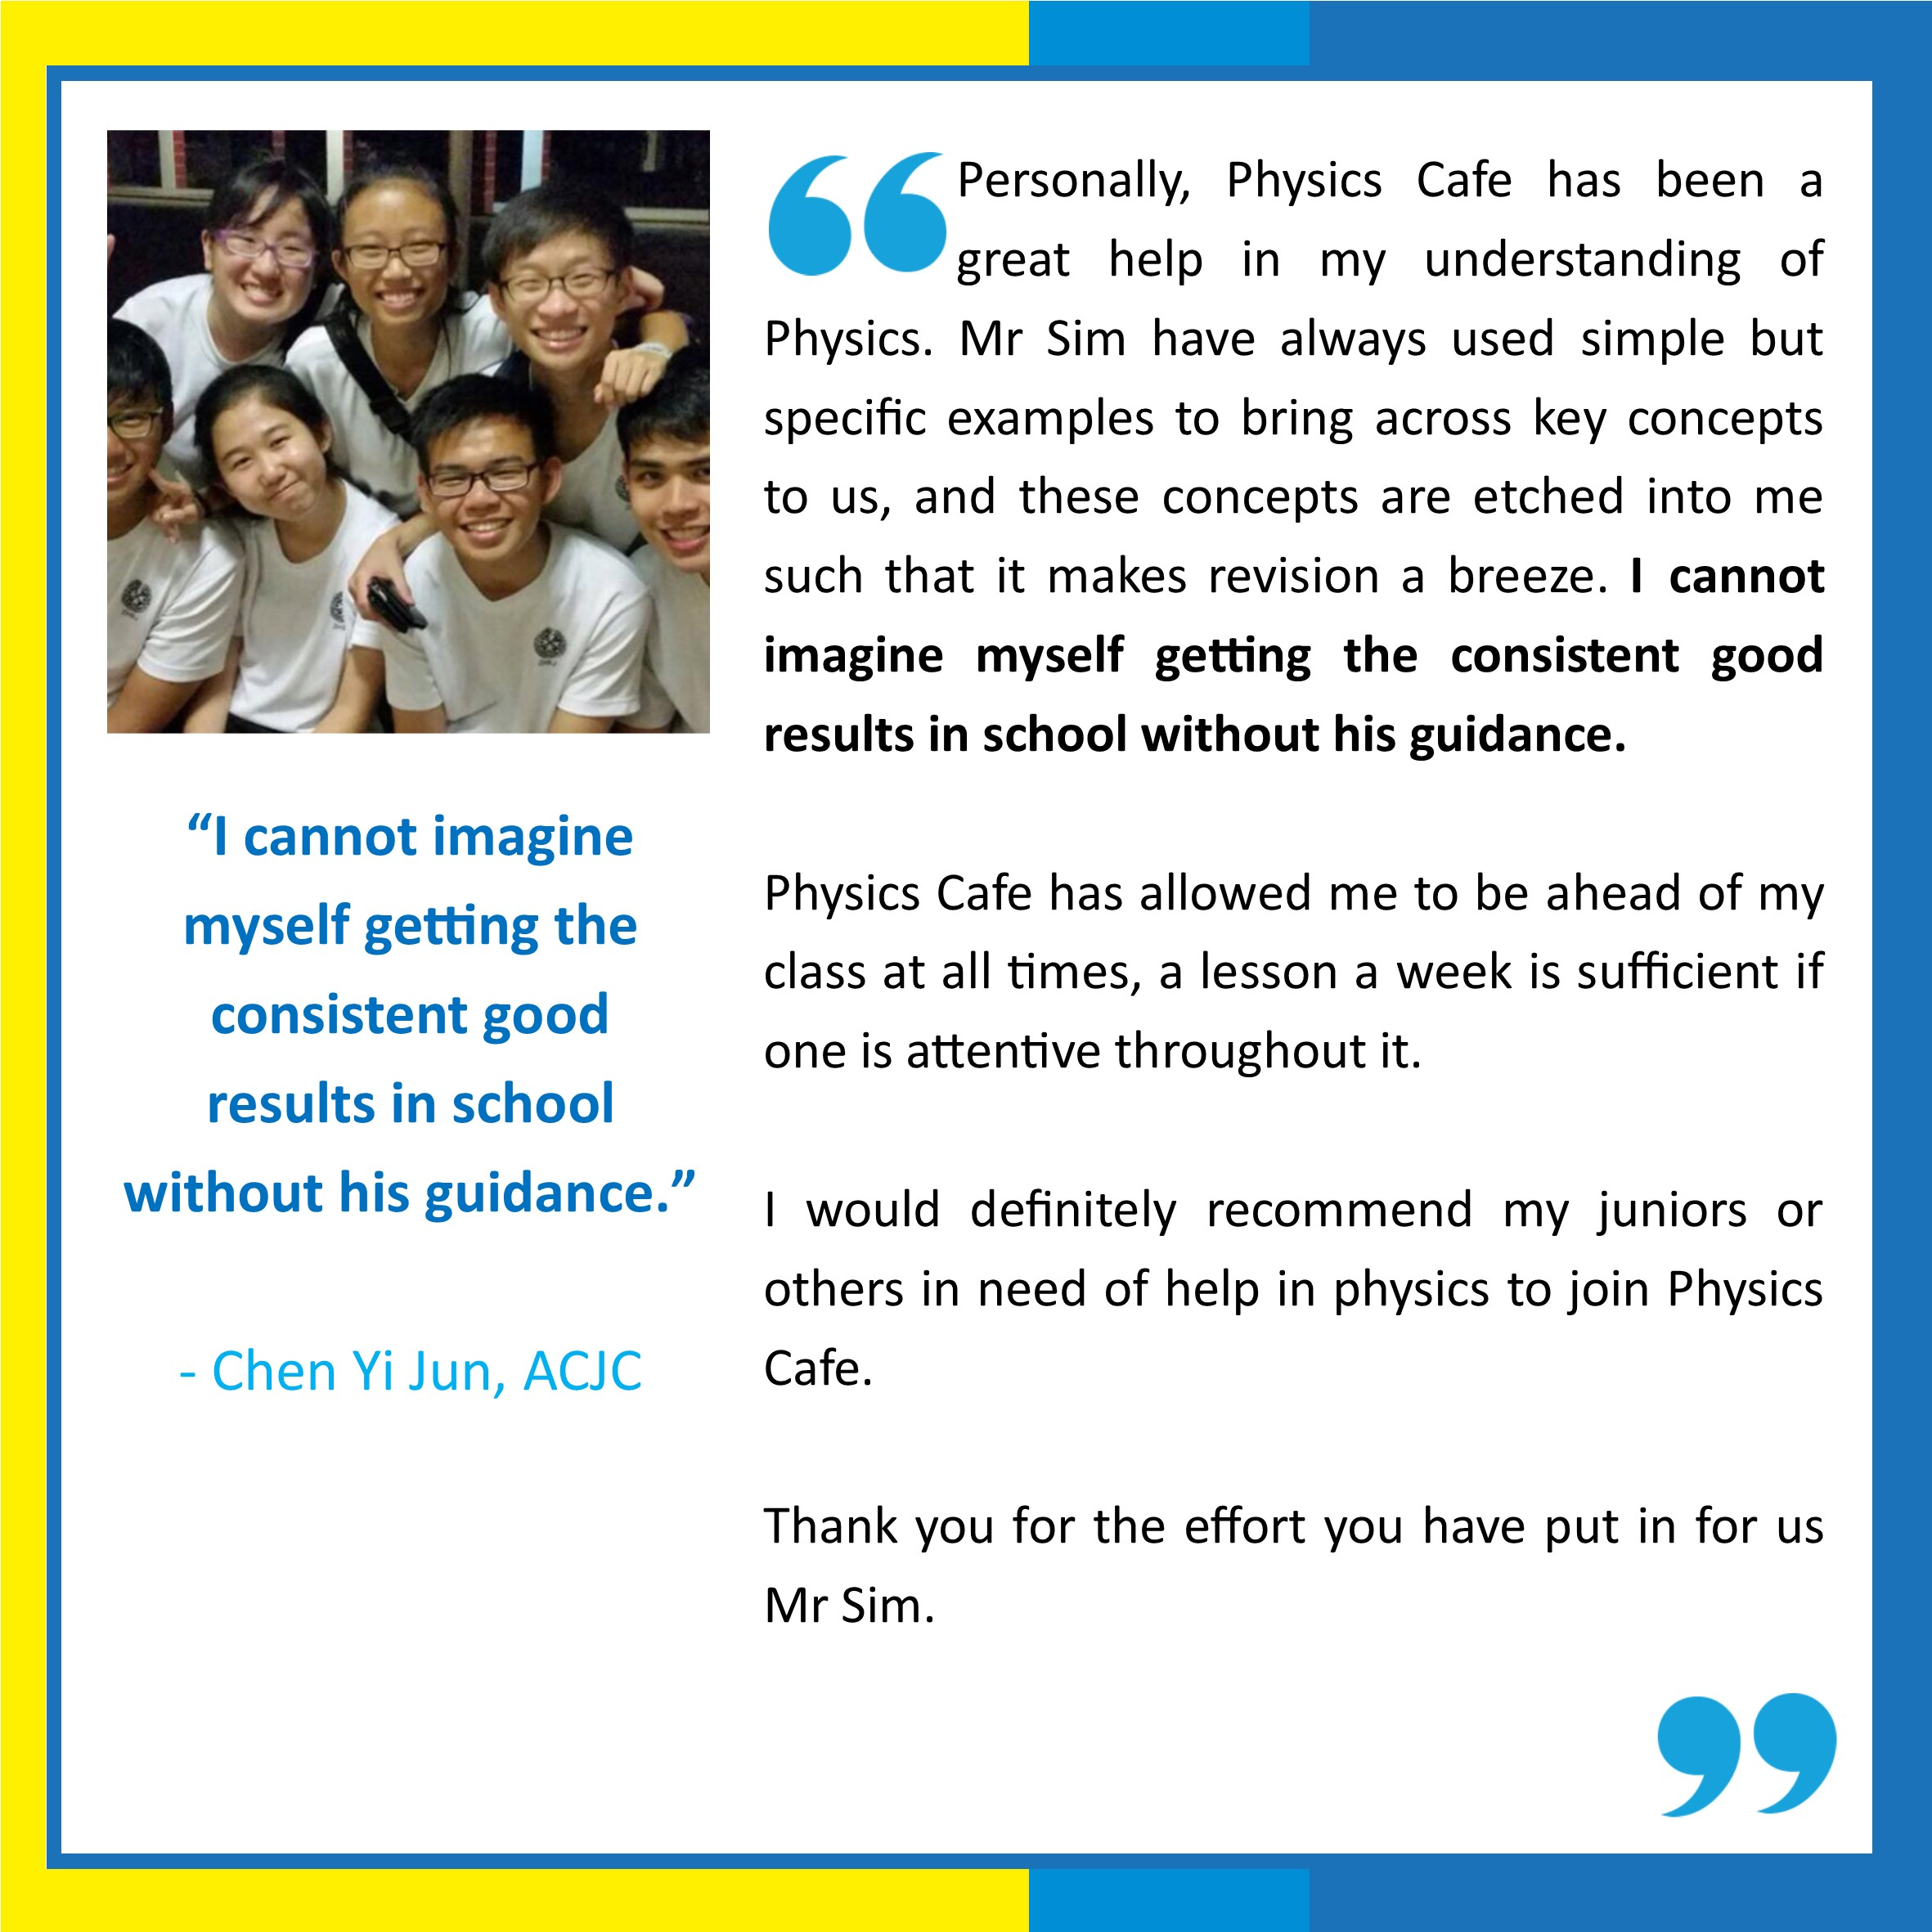 a level o level physics tuition exam performance updated in 2017 click on the blue link of the student to view photo of students and what they say about the physics cafe experience